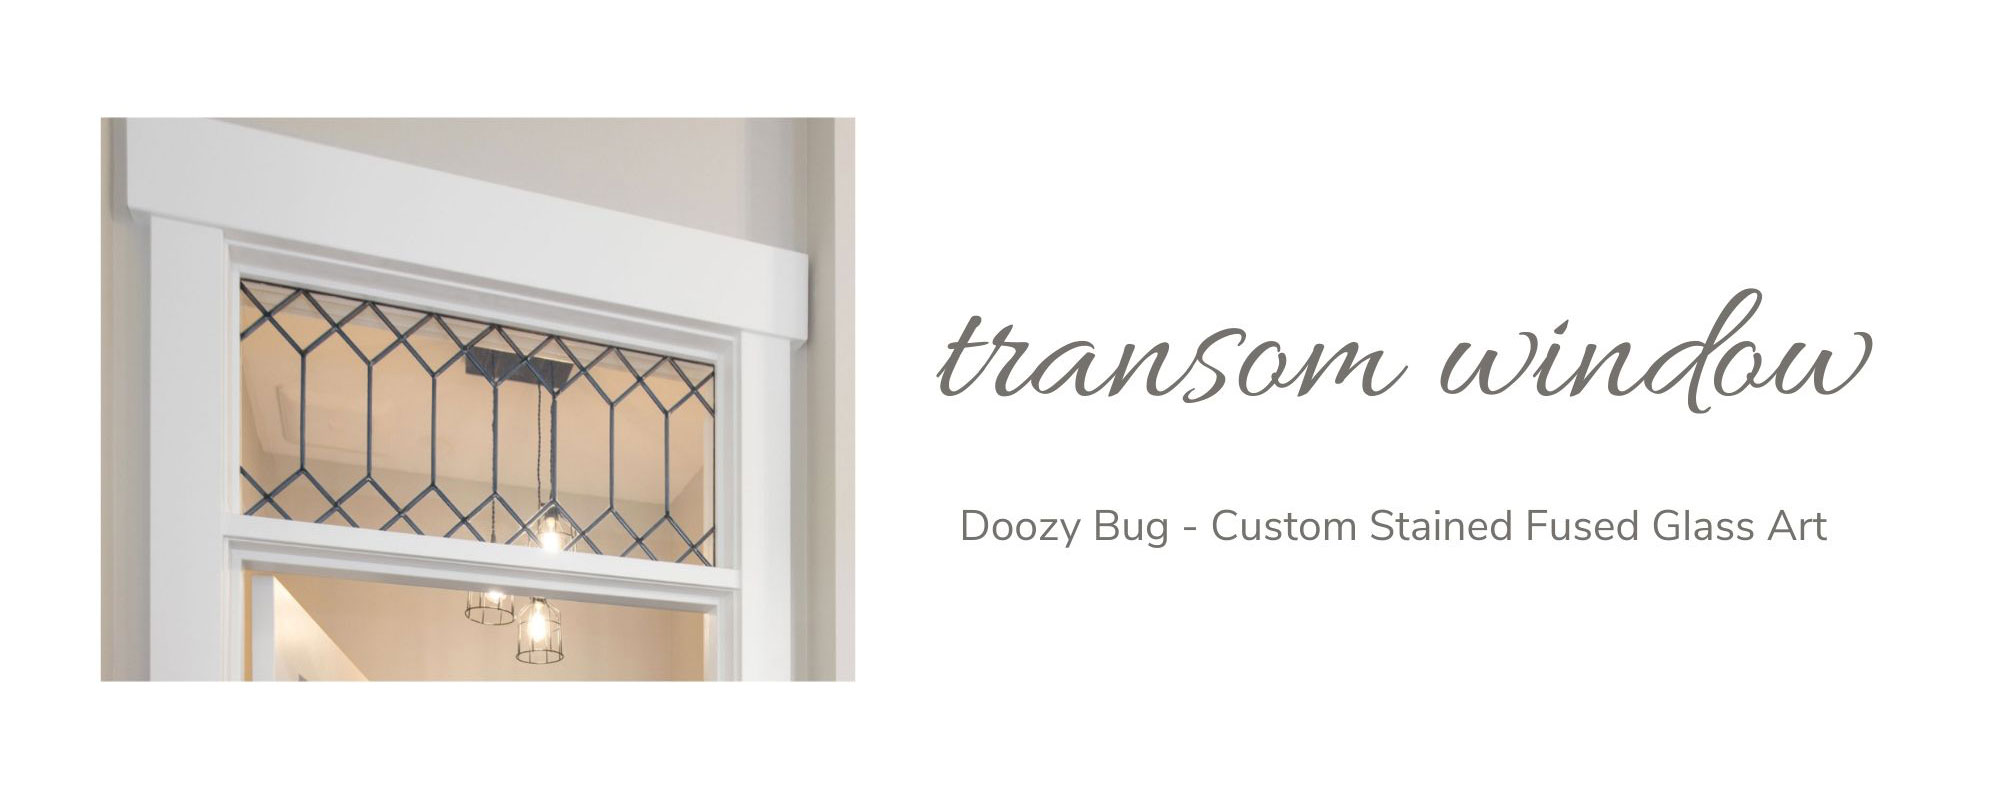 Doozy Bug - Custom Stained Fused Glass Art Transom Window